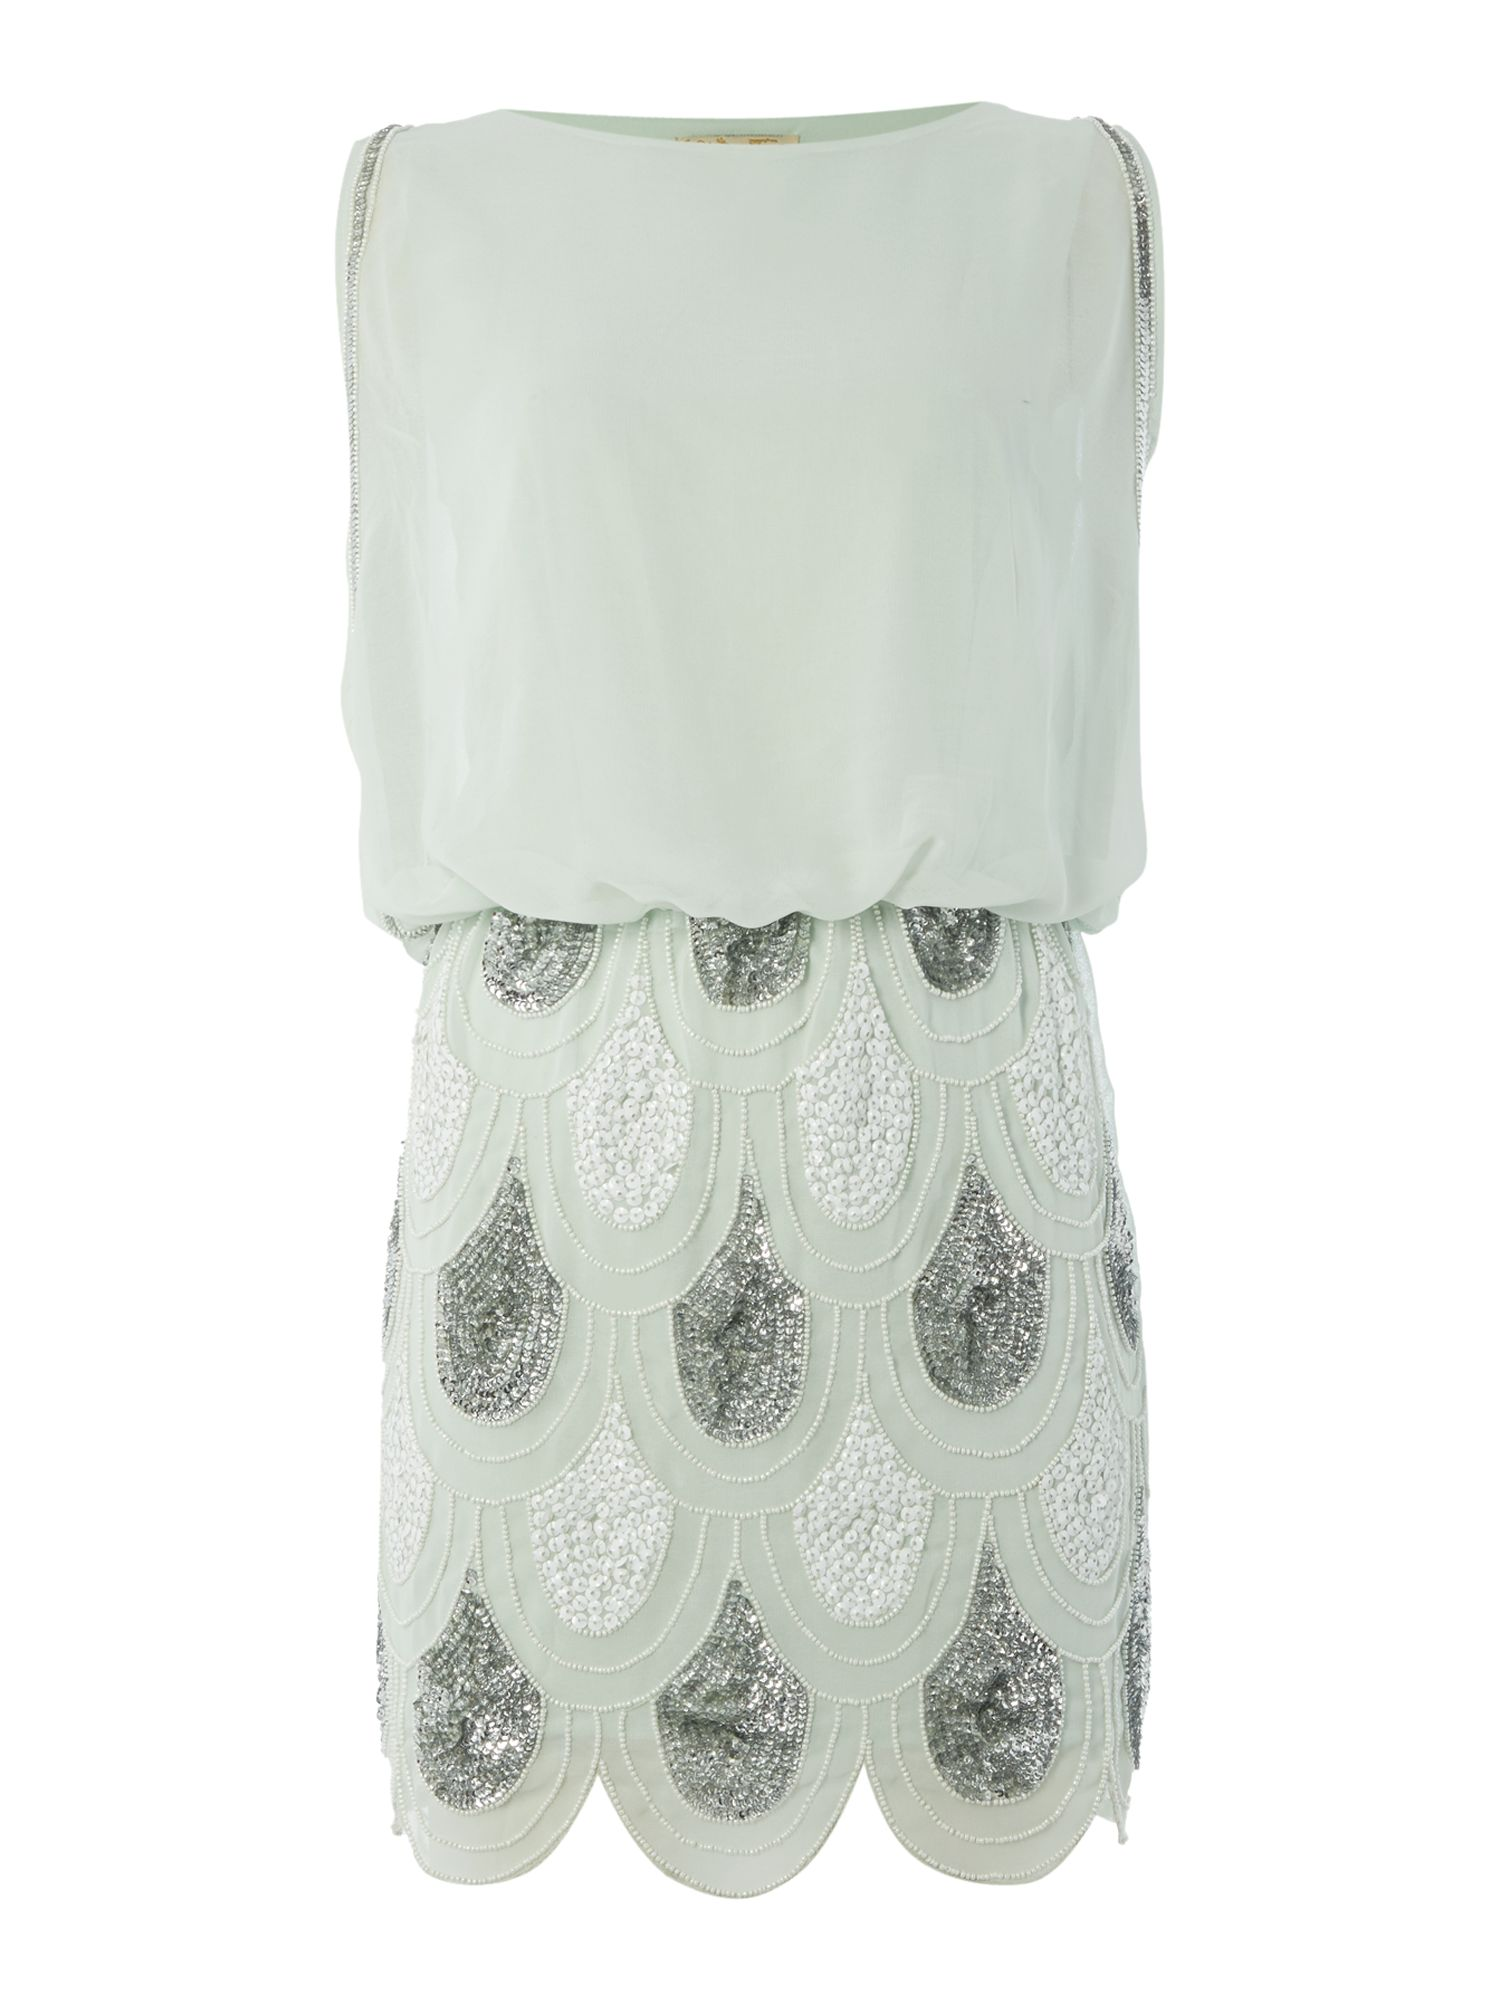 Lace and Beads Lace and Beads Sleeveless Blouson Top Sequin Detail Dress, Mint